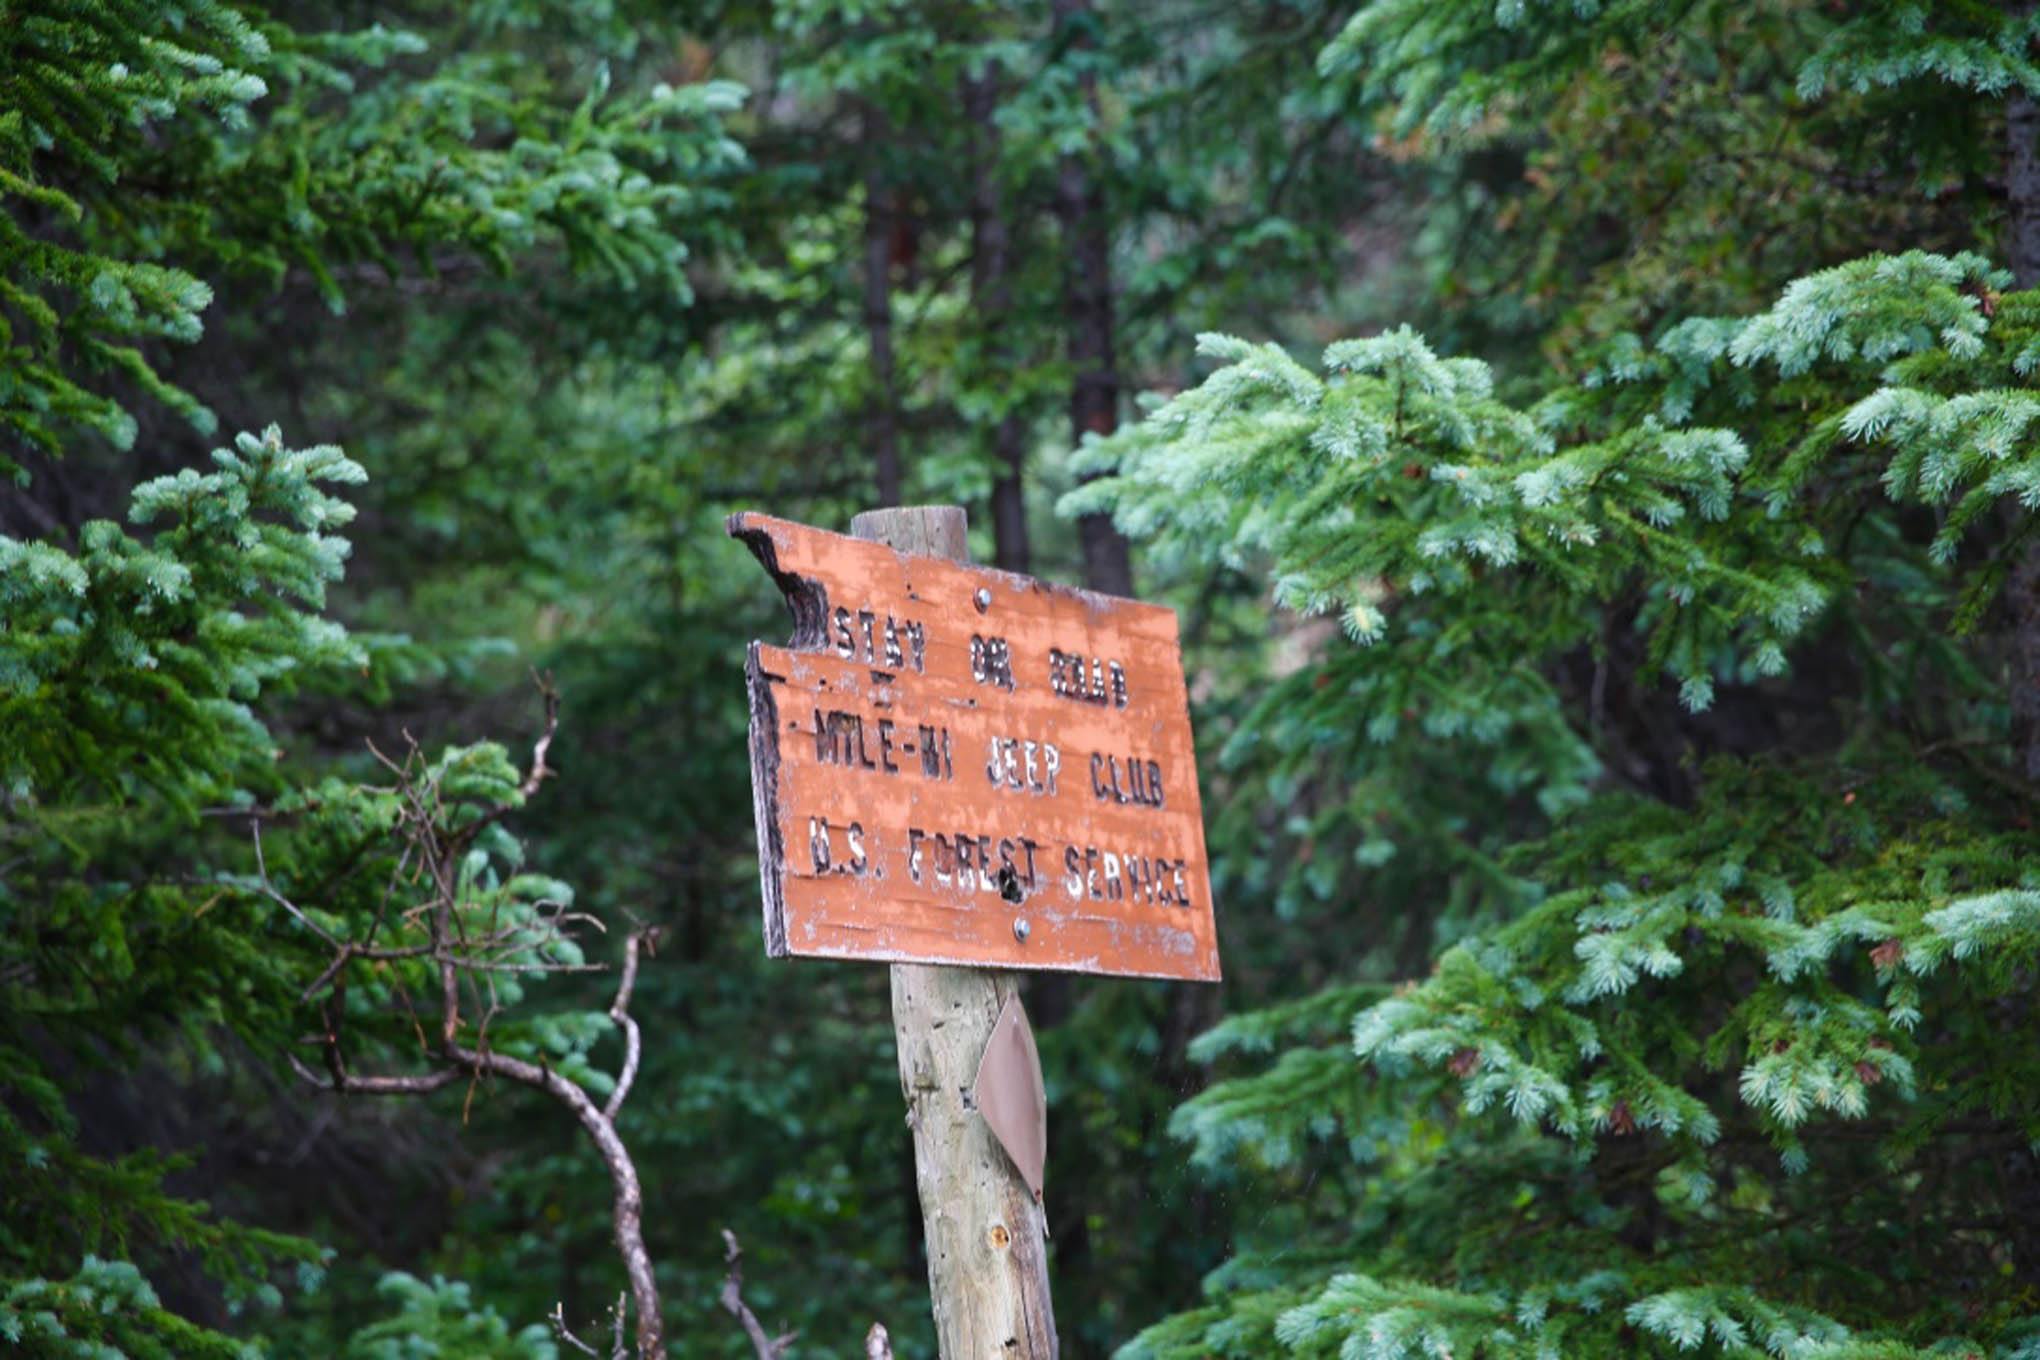 Old Mile-Hi Jeep Club sign as seen on the trail to Red Cone Pass.